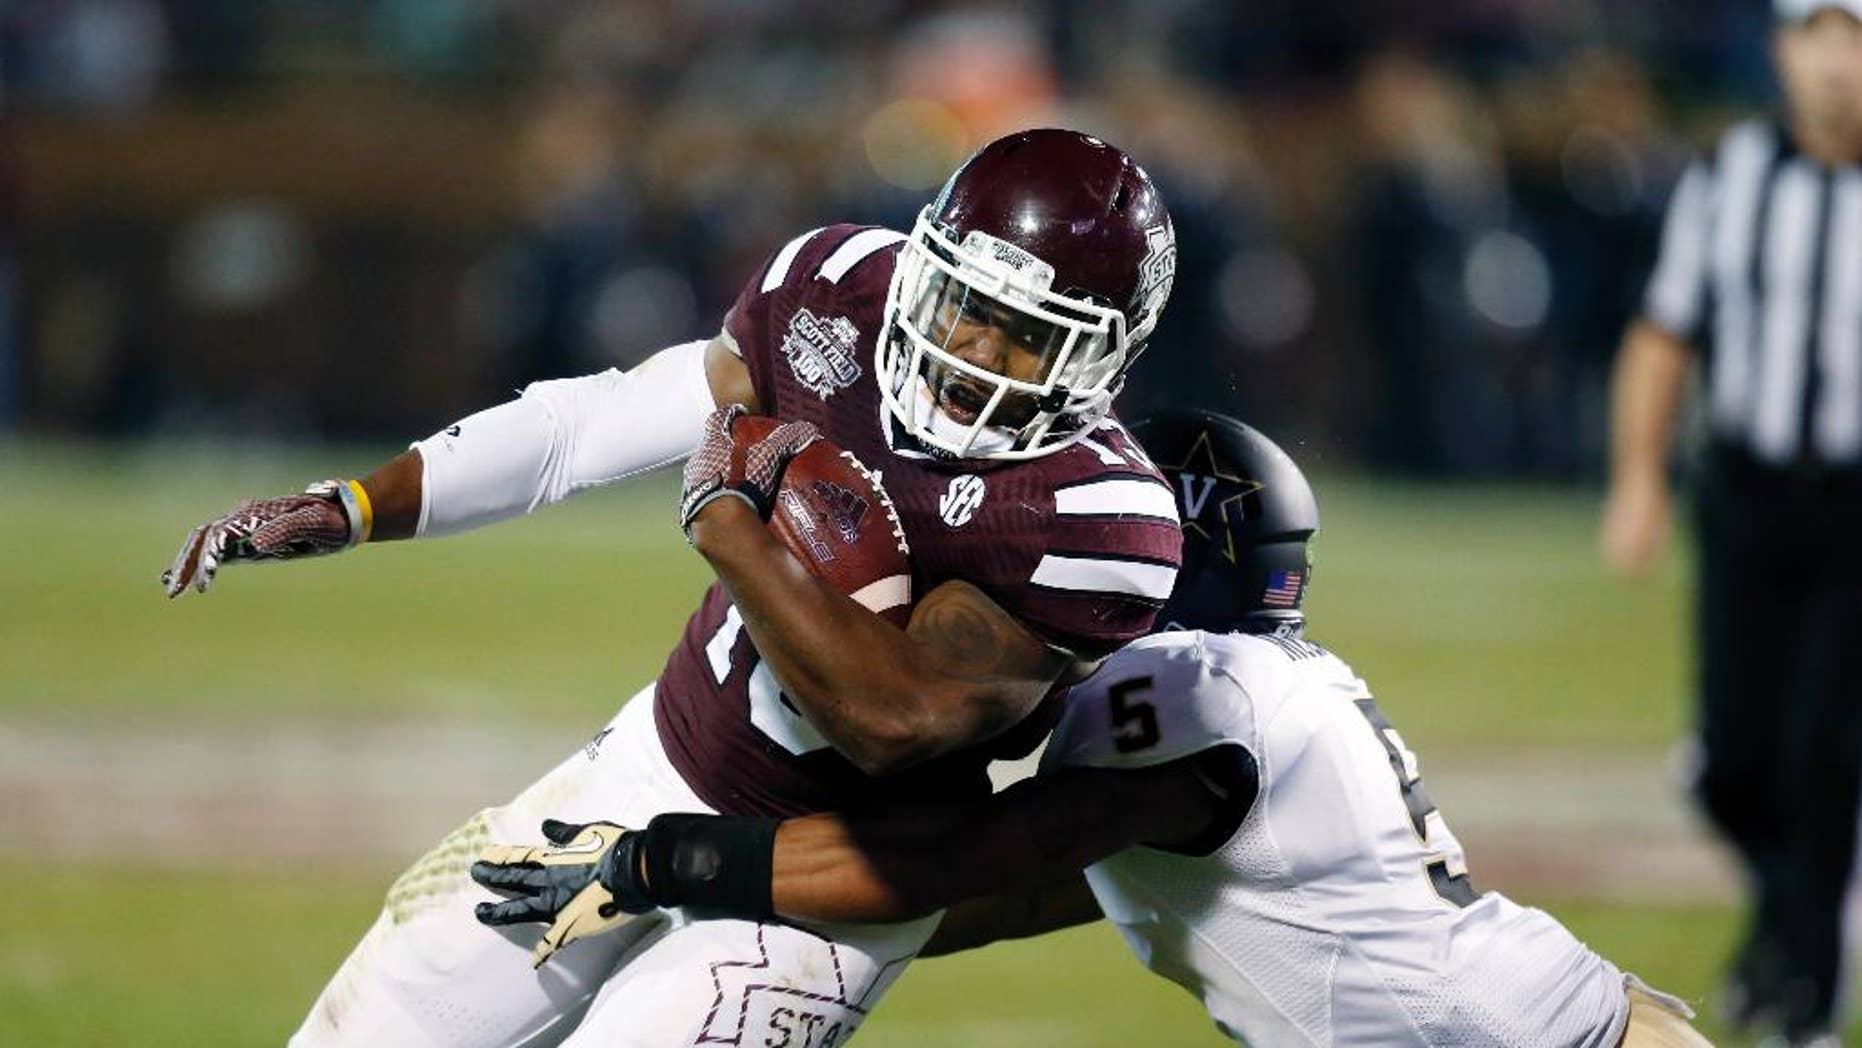 Mississippi State running back Josh Robinson (13) is tackled by Vanderbilt defensive back Torren McGaster (5) after a run for a first down in the first half of an NCAA college football game Saturday, Nov. 22, 2014, in Starkville, Miss. (AP Photo/Rogelio V. Solis)